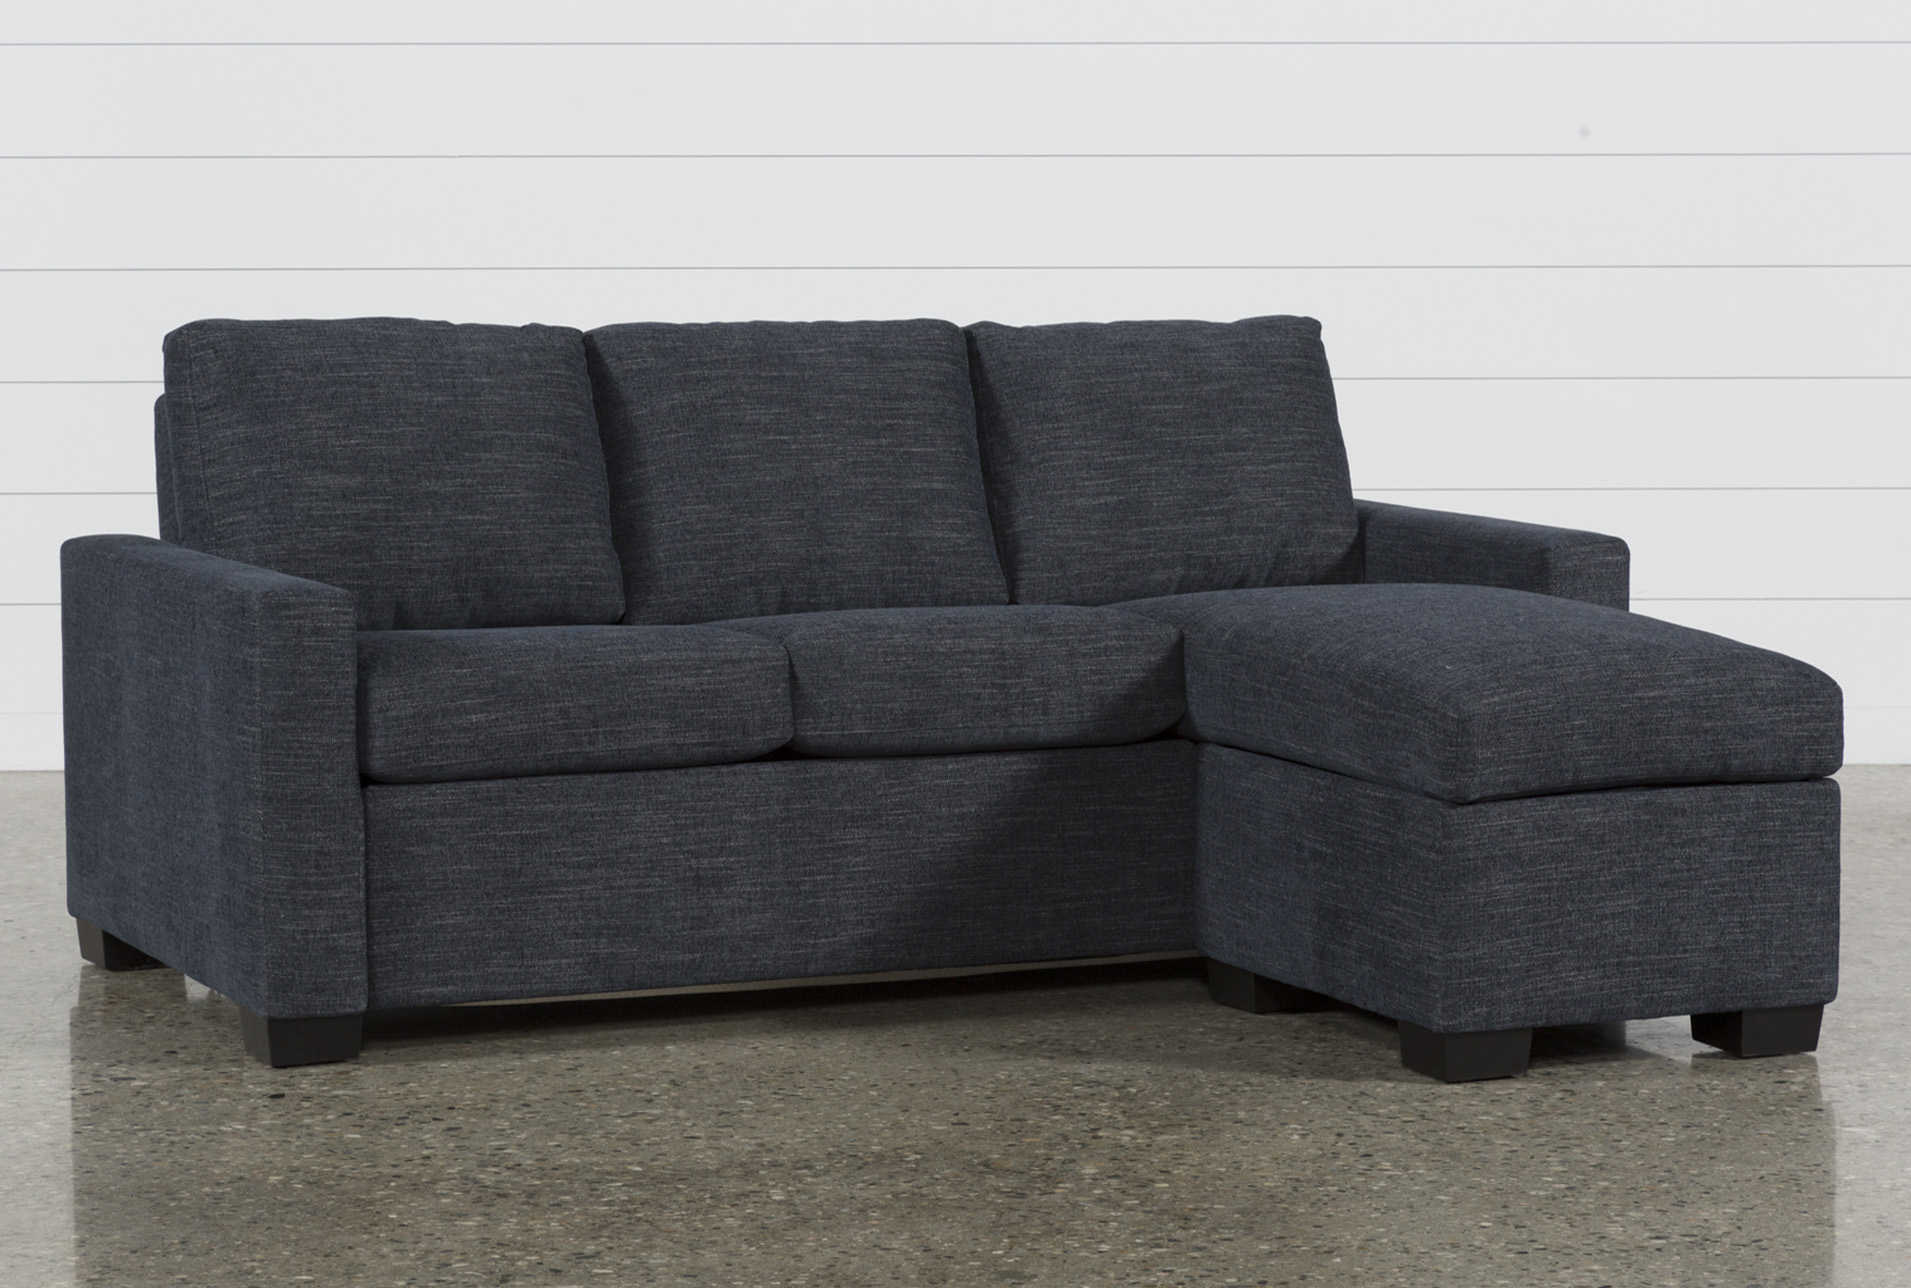 Sofa Beds Free Assembly with Delivery Living Spaces